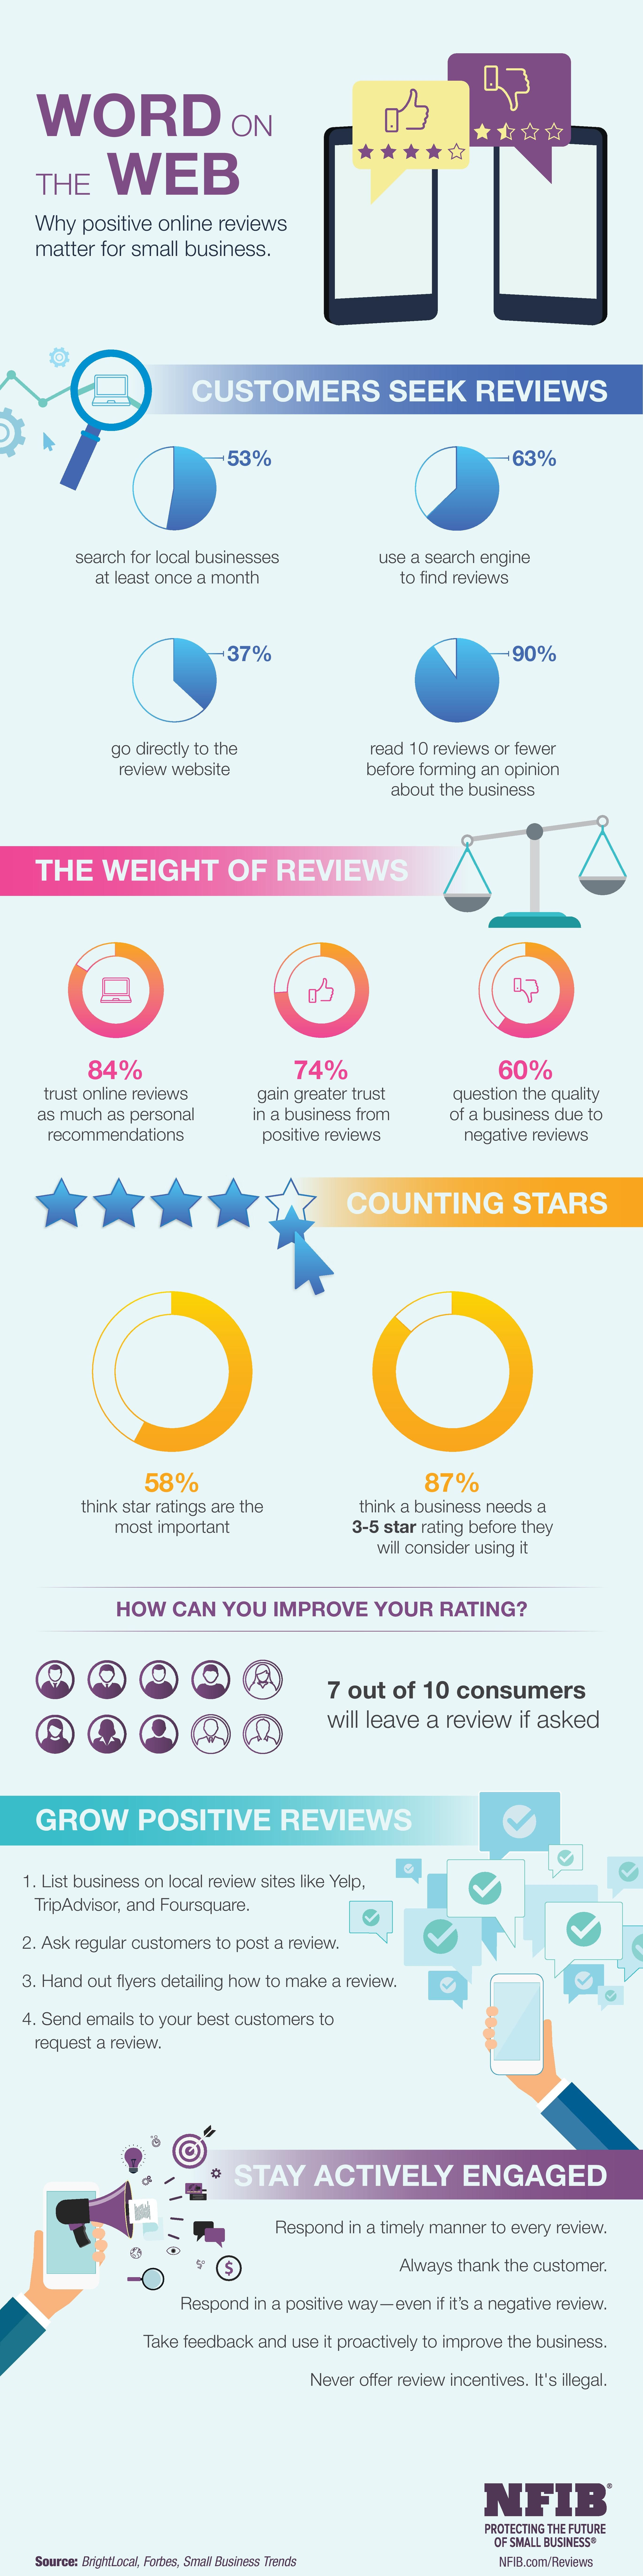 Infographic Online Reviews And Your Small Business Reputation